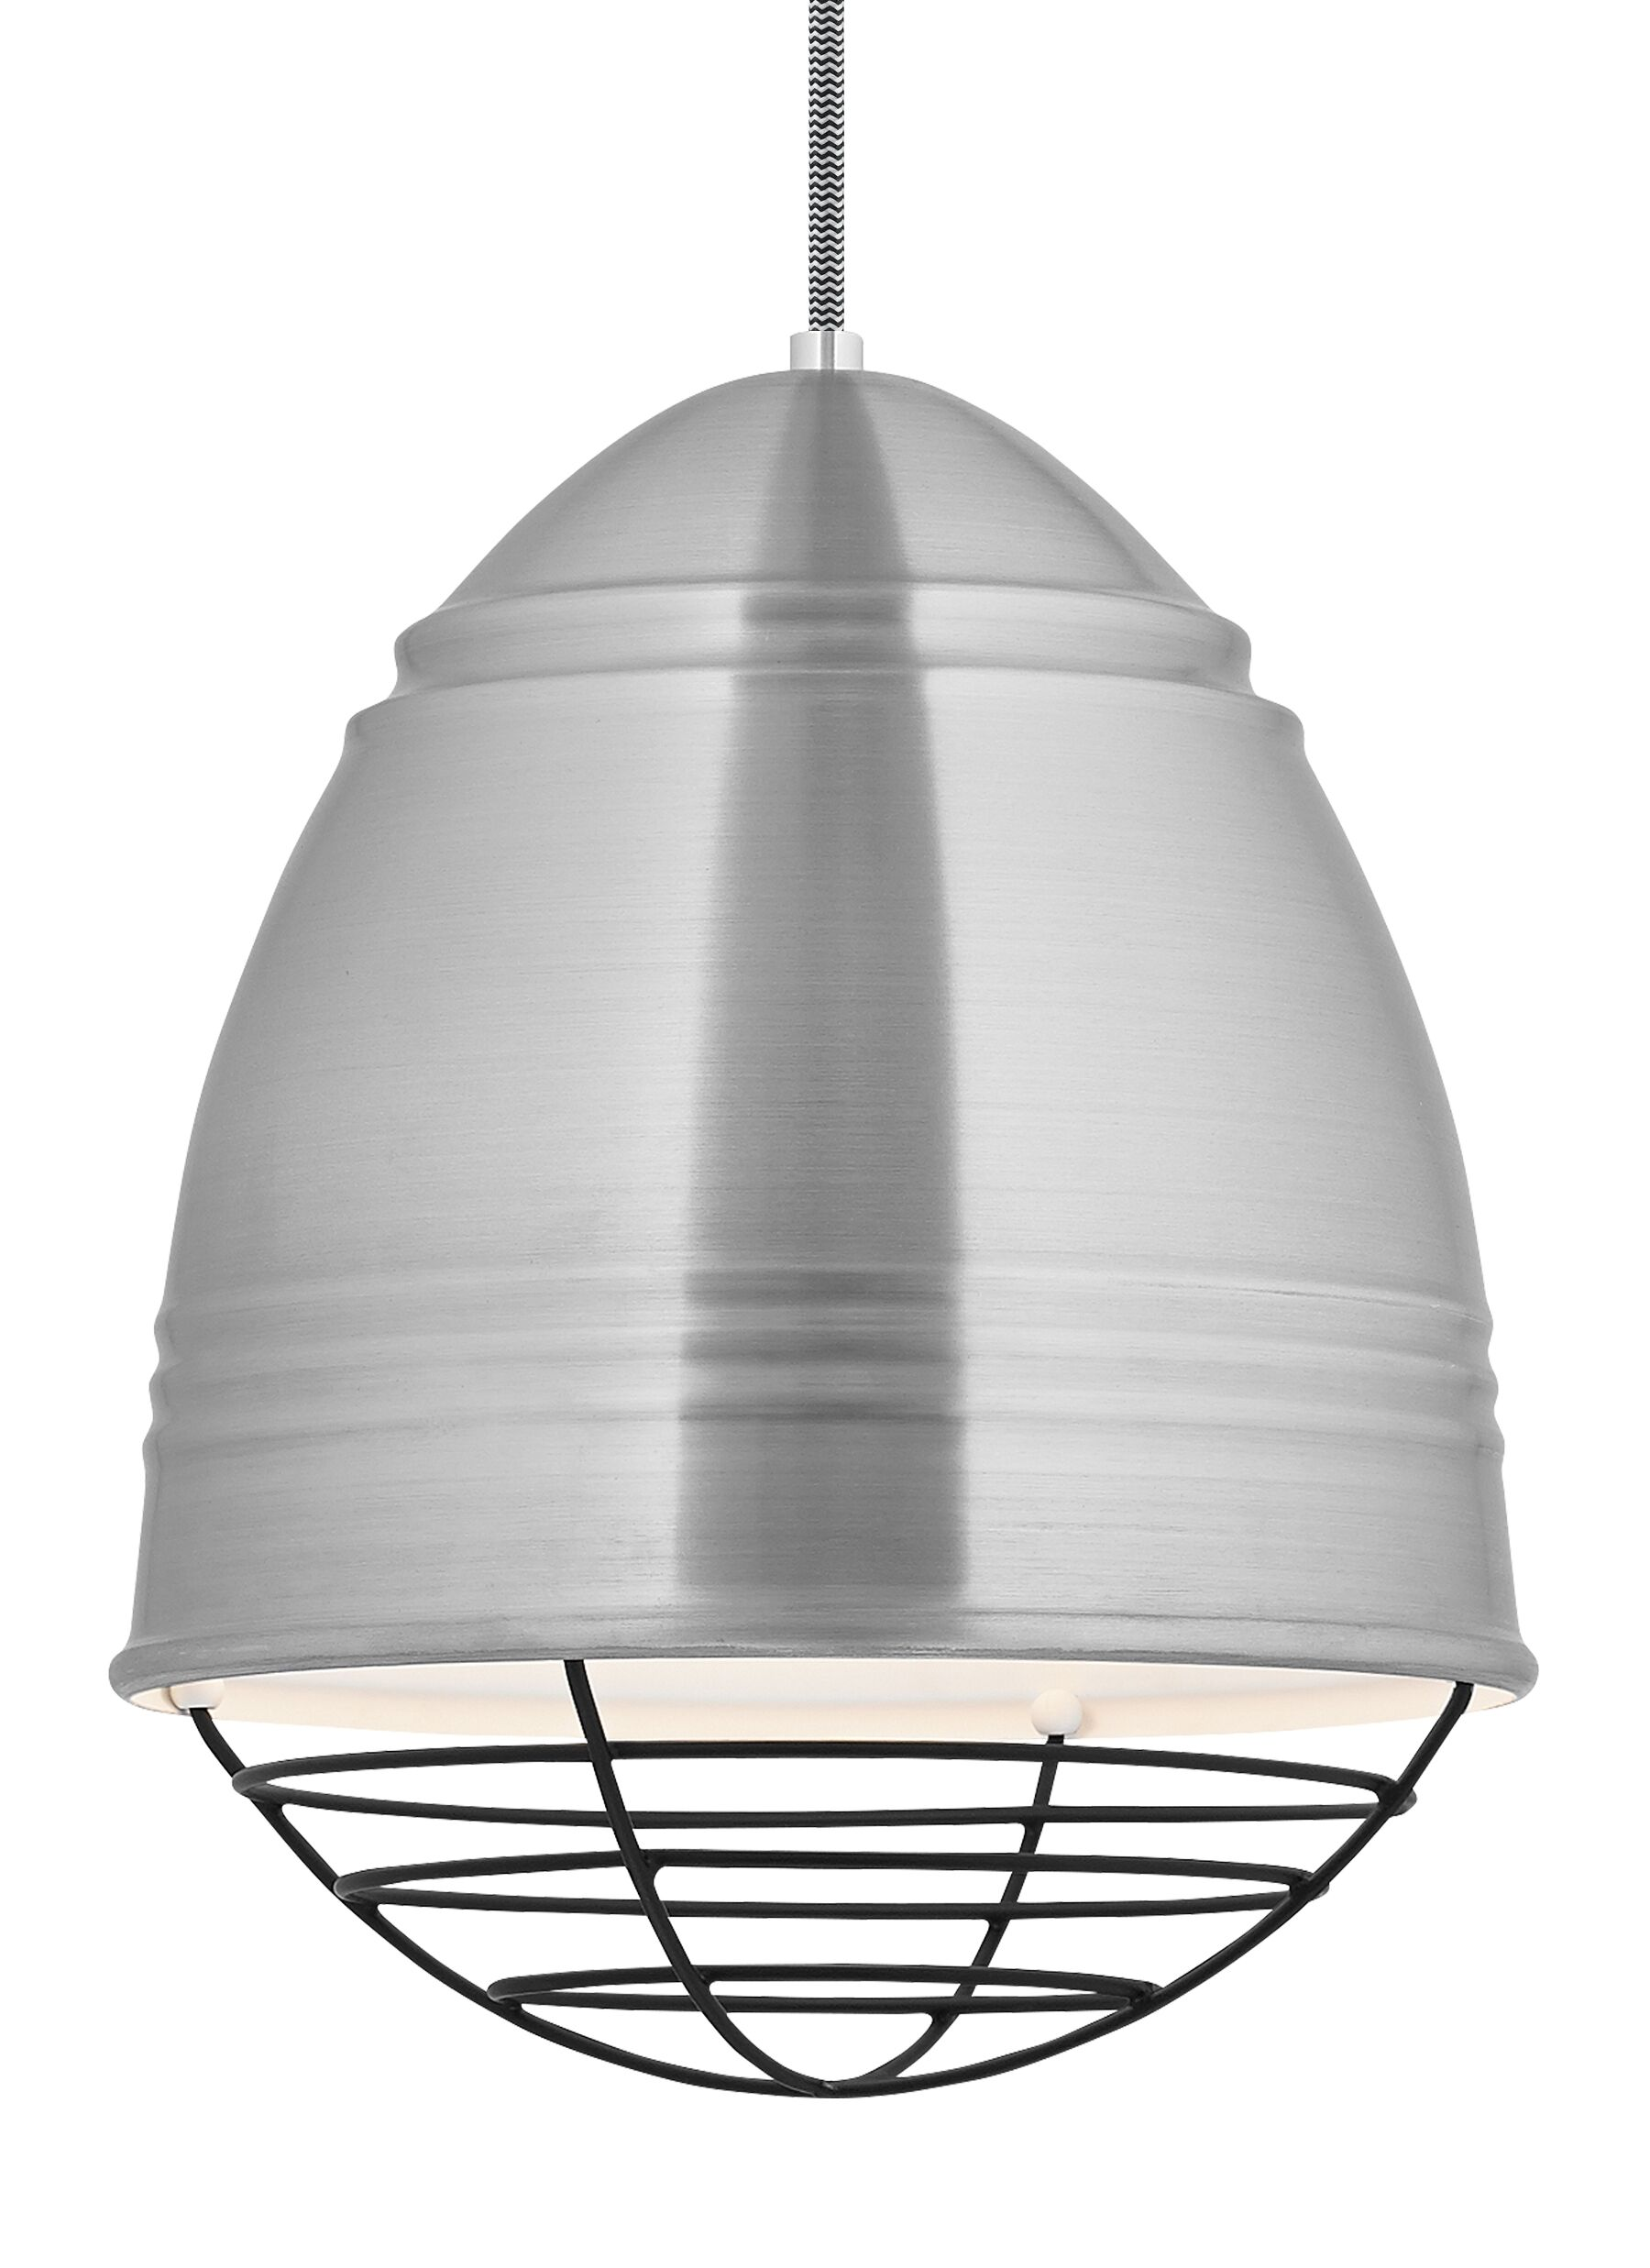 Else 1-Light Bell Pendant Finish: Brushed�Aluminum/White, Bulb Type: LED, Shade Color: Polished Nickel